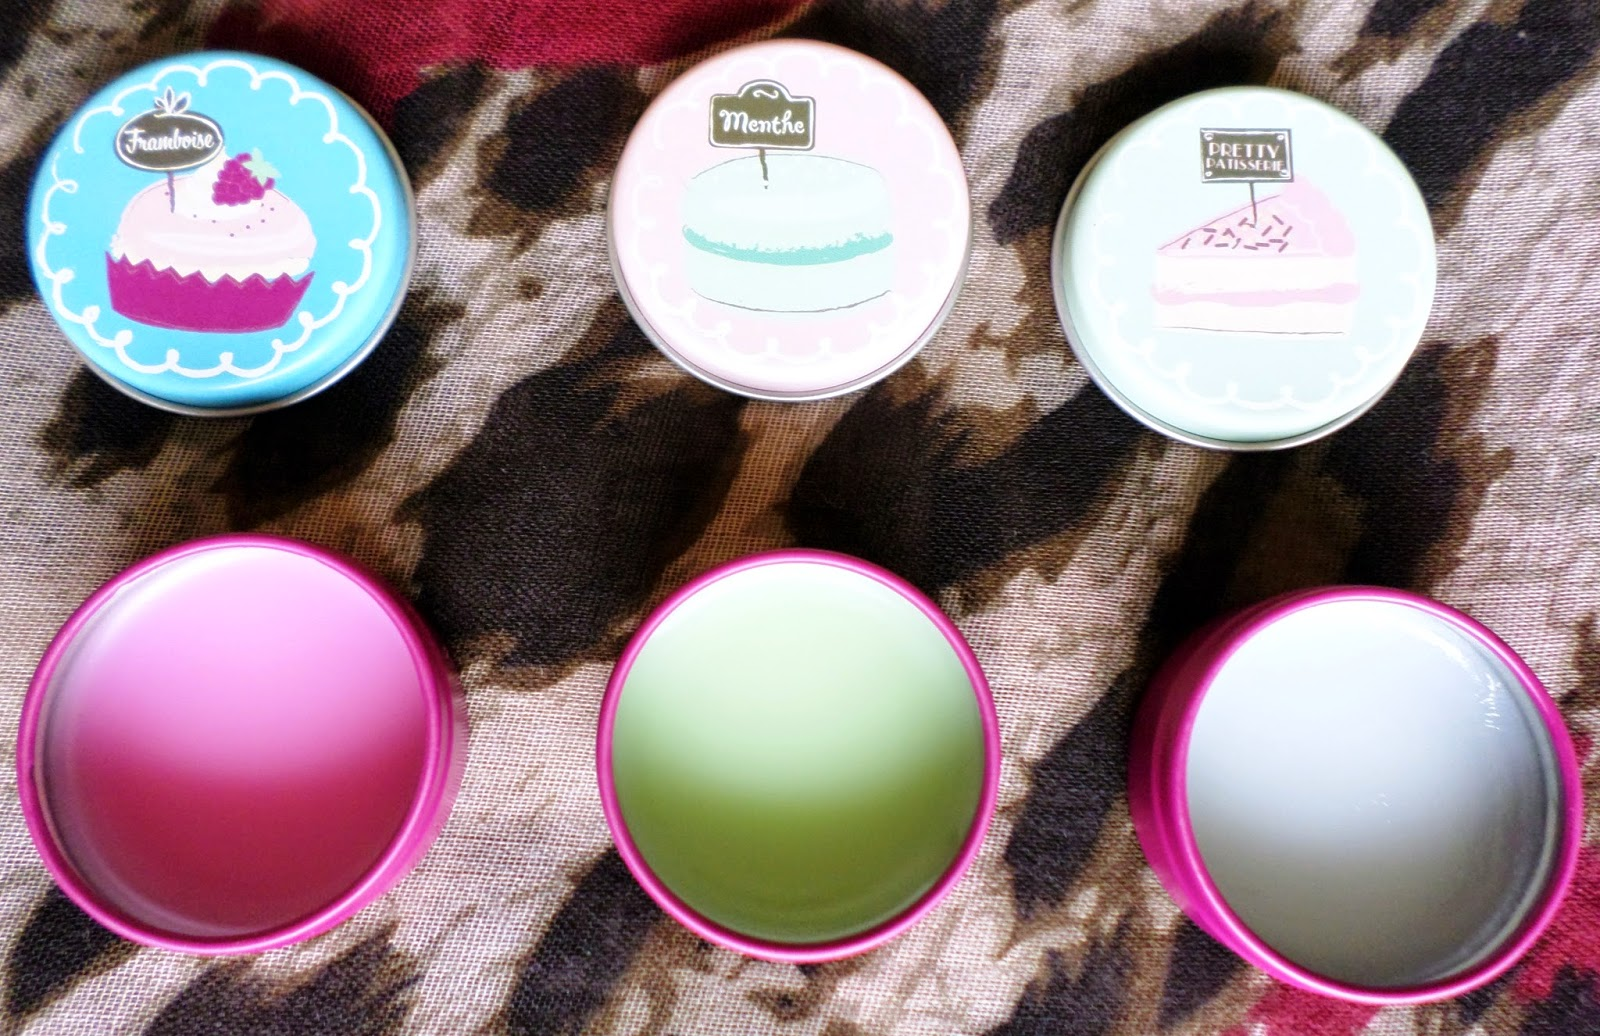 Boots Pretty Patisserie Lip Balm Trio